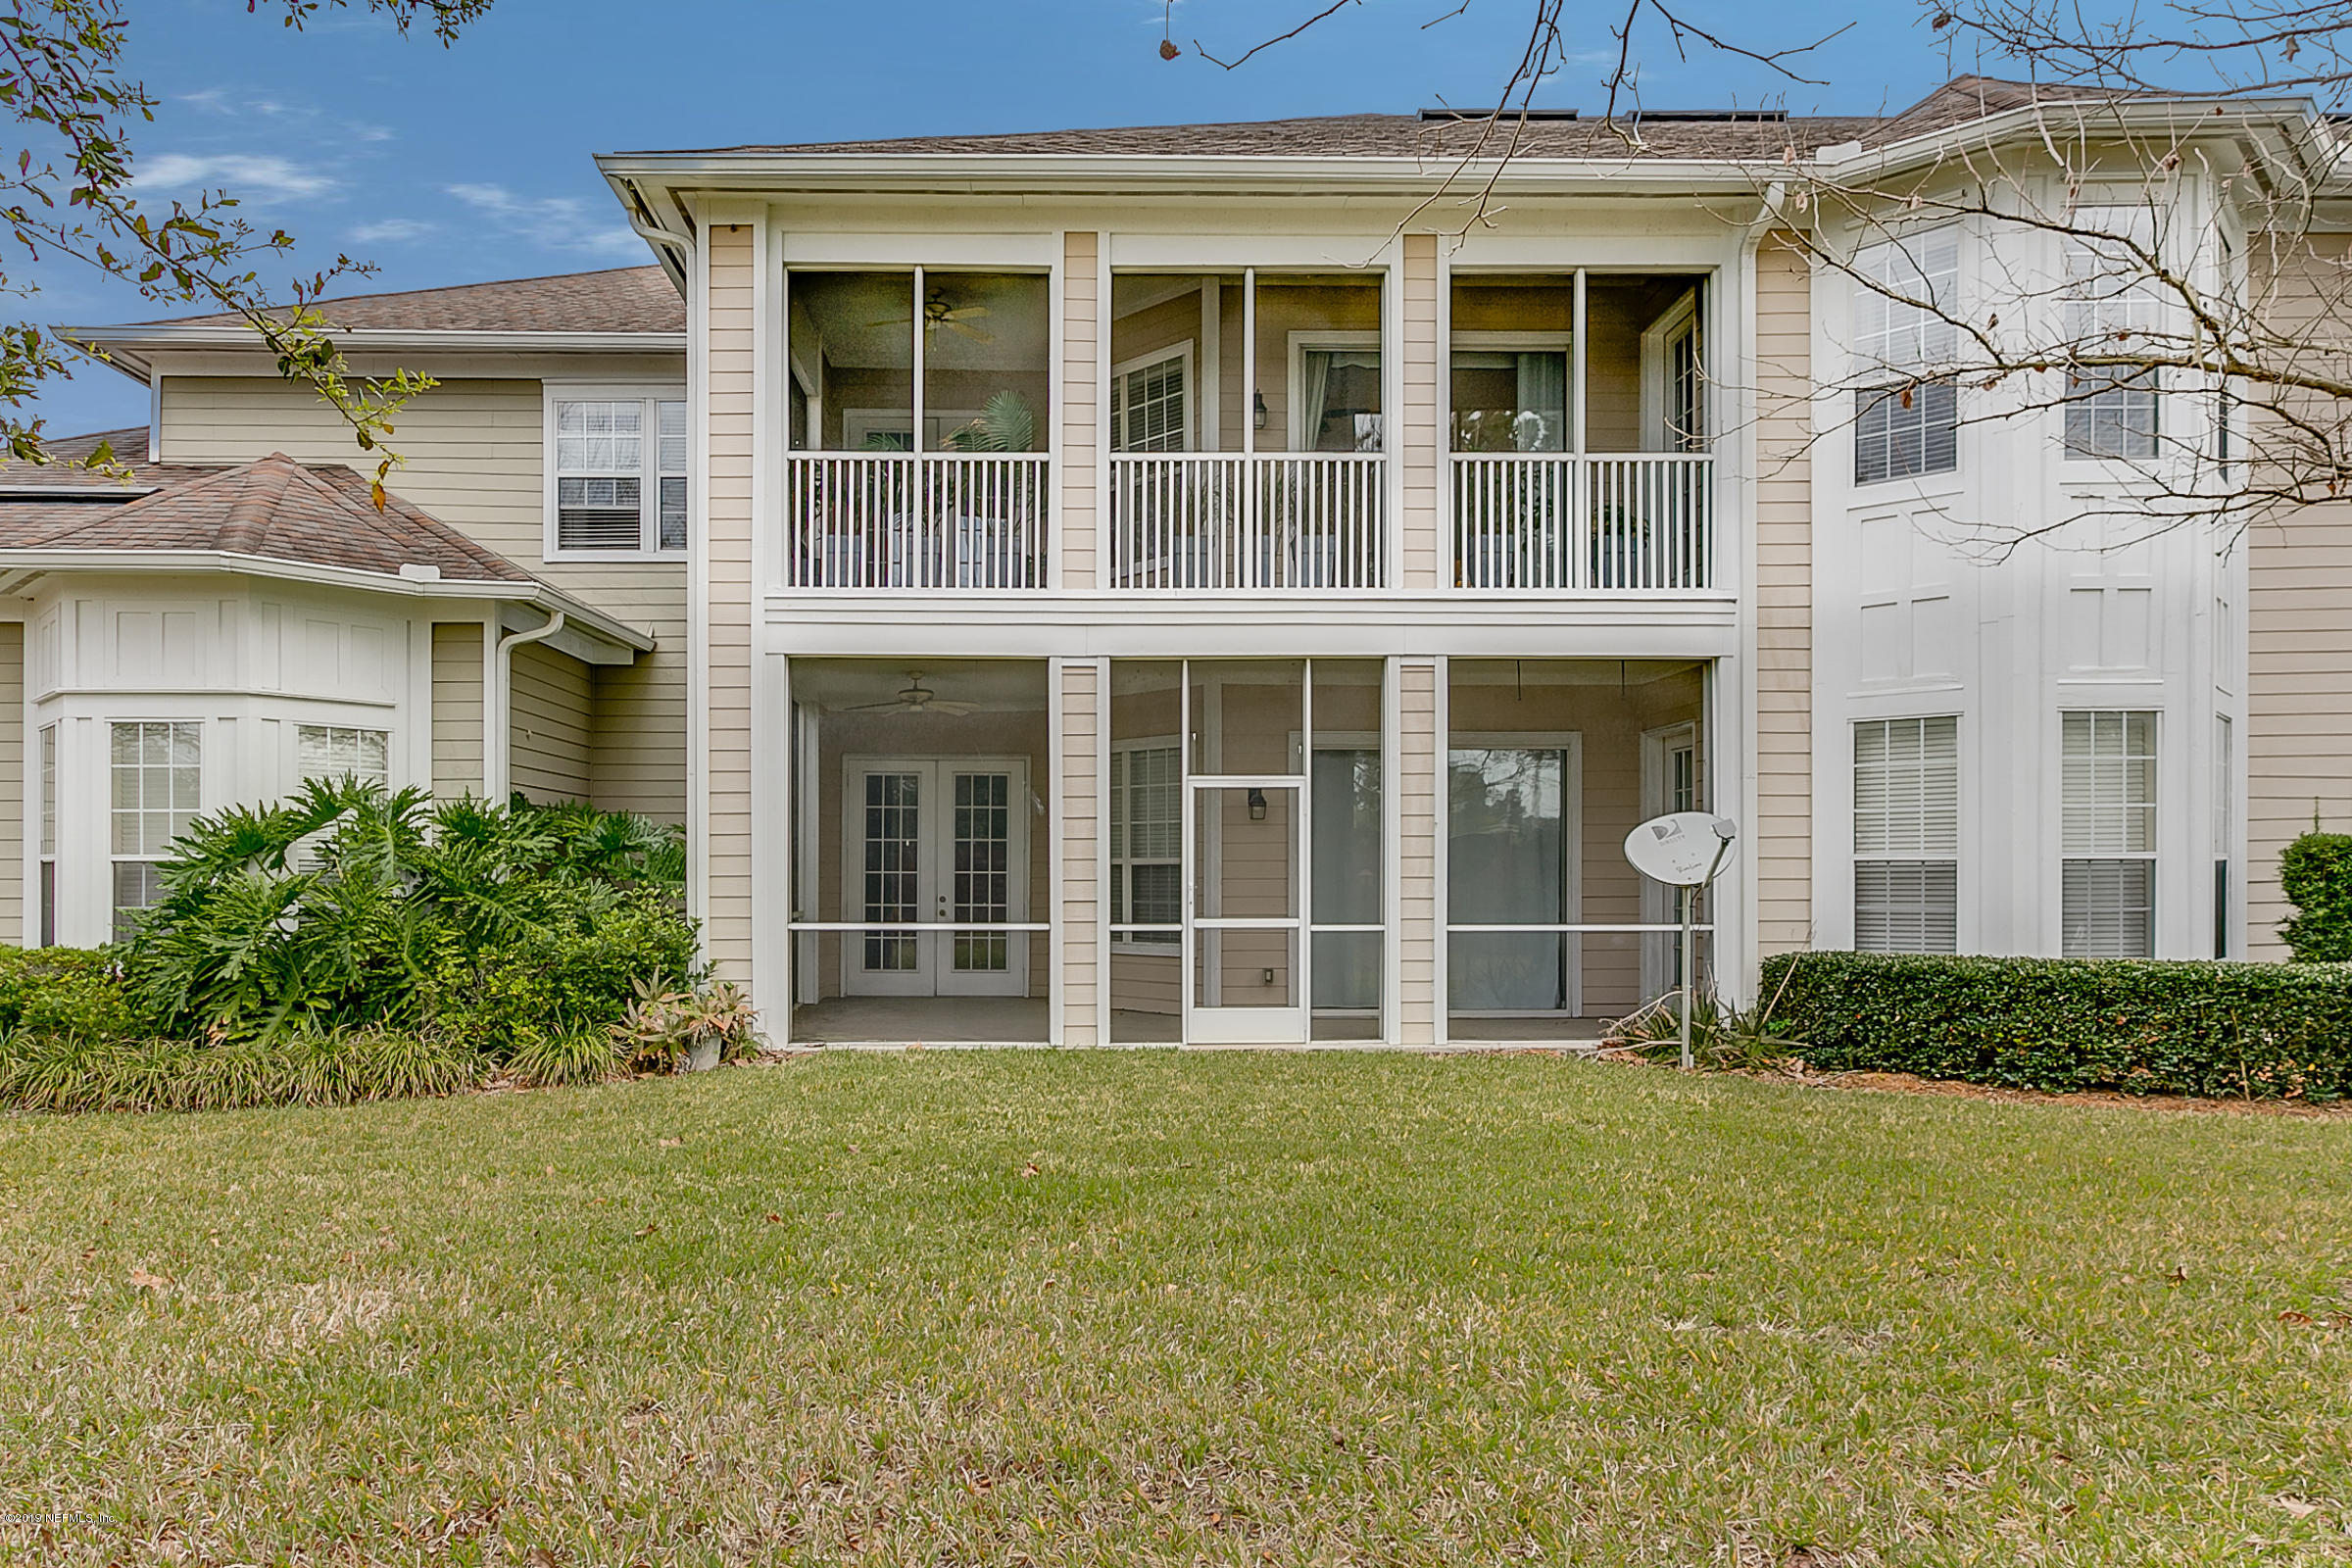 2023 POND RIDGE, FLEMING ISLAND, FLORIDA 32003, 3 Bedrooms Bedrooms, ,3 BathroomsBathrooms,Residential - condos/townhomes,For sale,POND RIDGE,984639